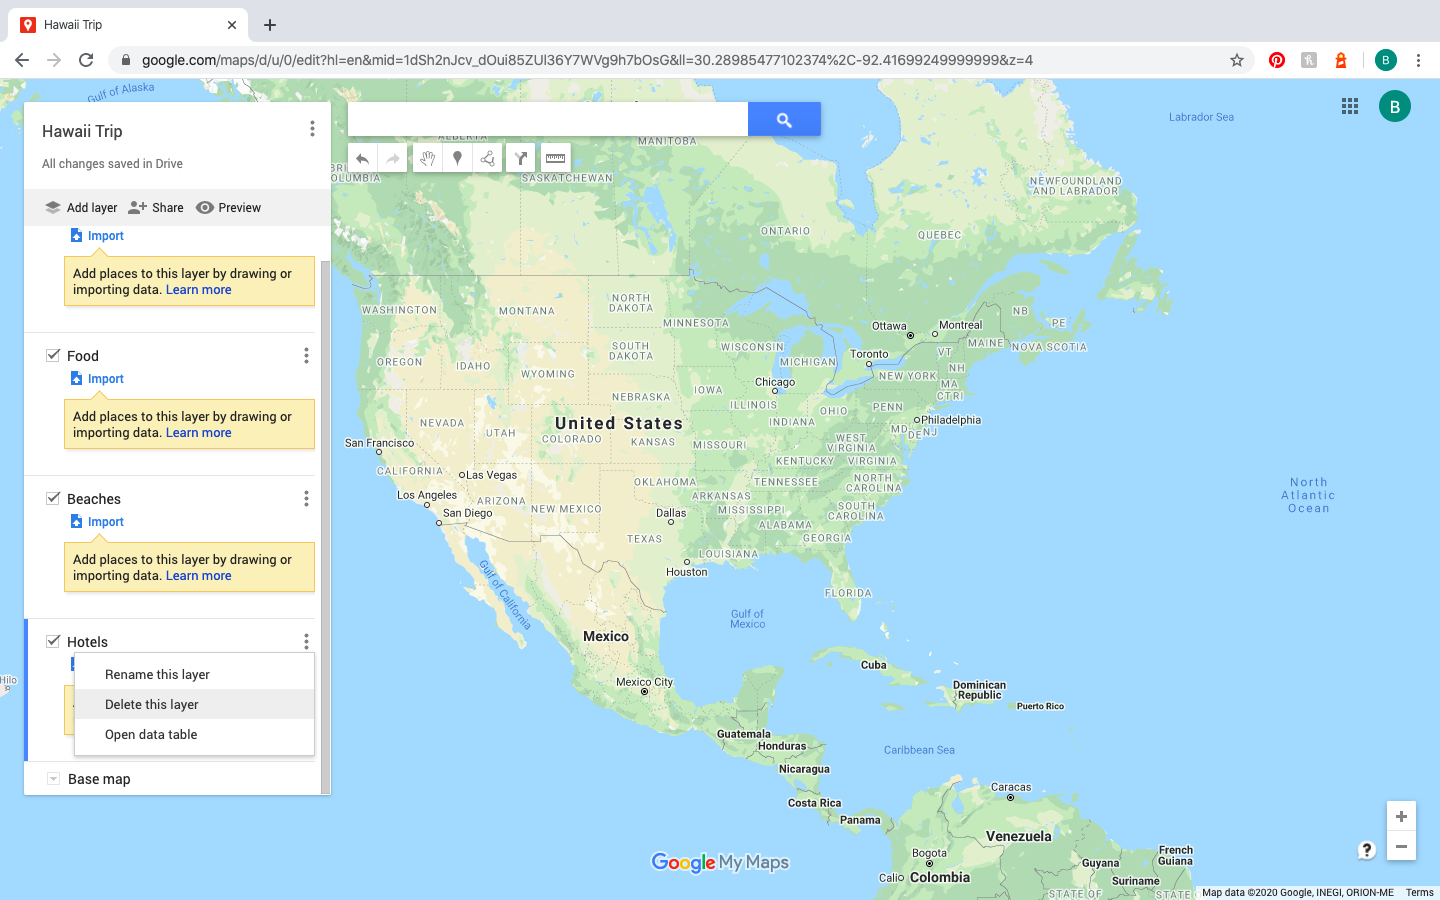 how to add and delete layers on Google Maps